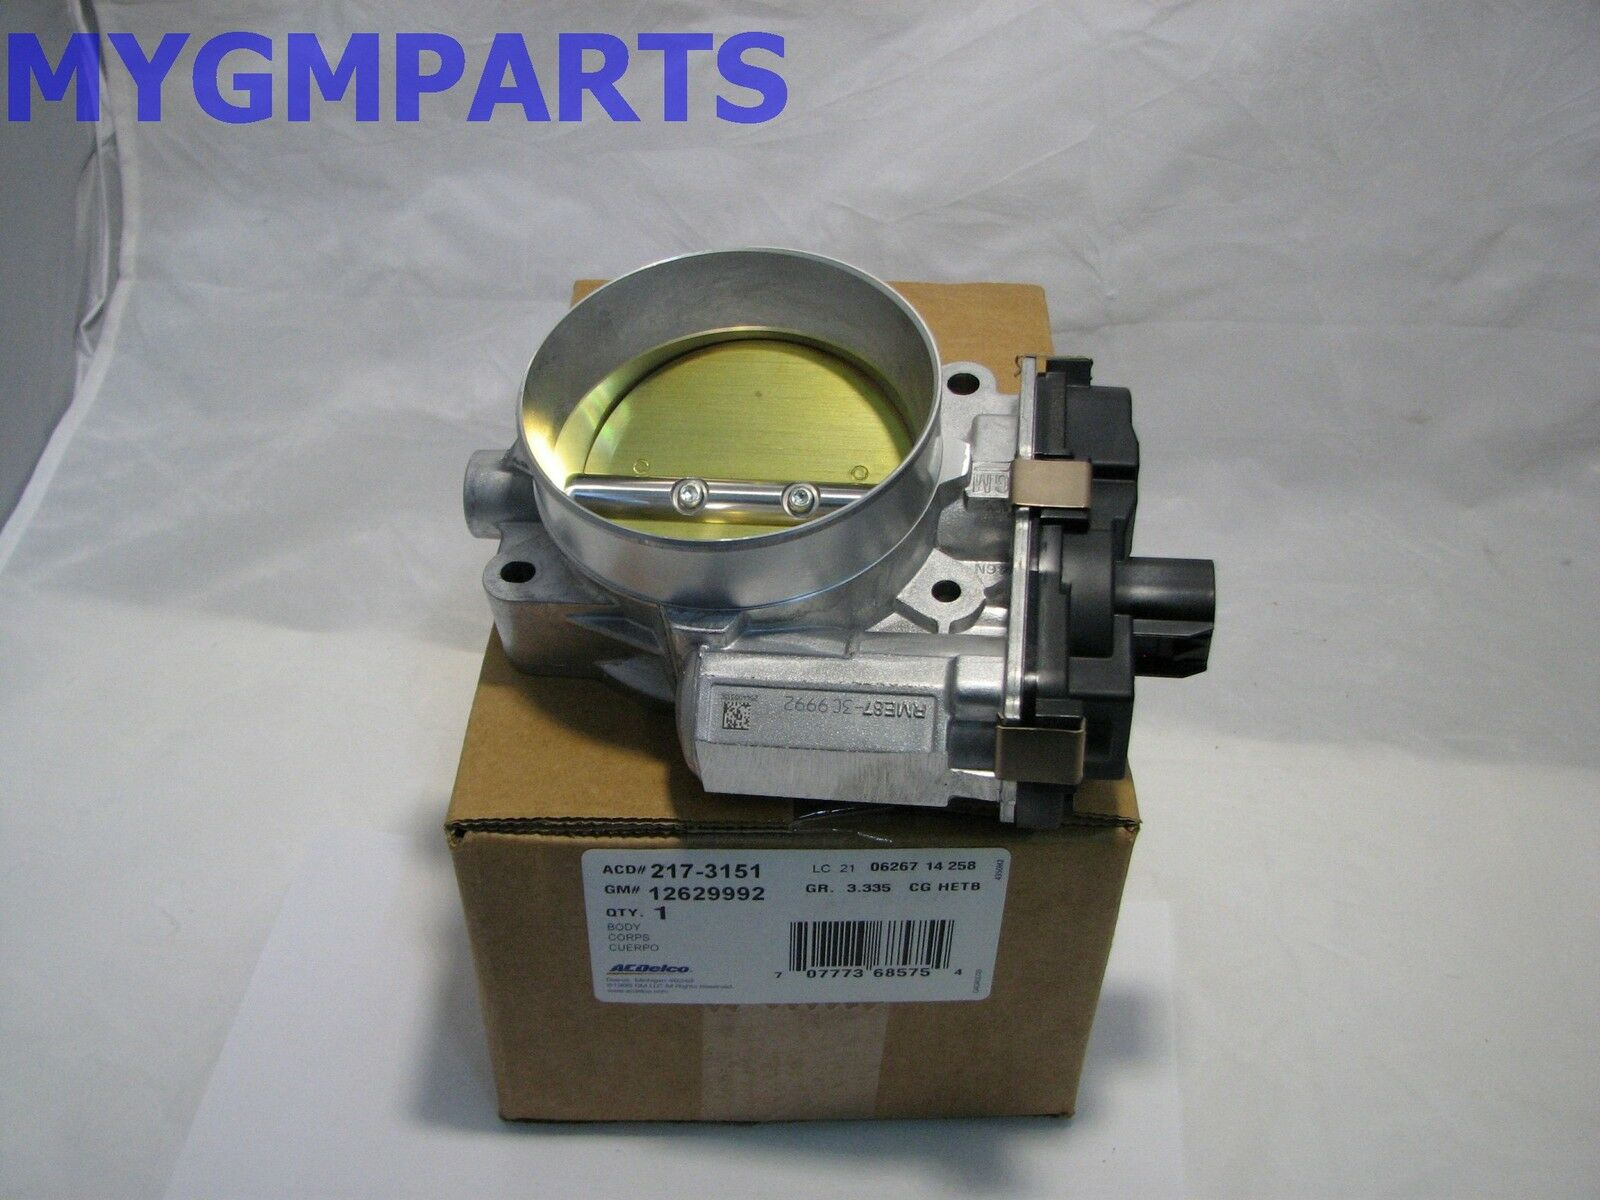 629 Lsa Fly By Wire Throttle Body New Oem Gm 12629992 21422 2010 Cts V Wiring Diagram 1 Of 2only 2 Available